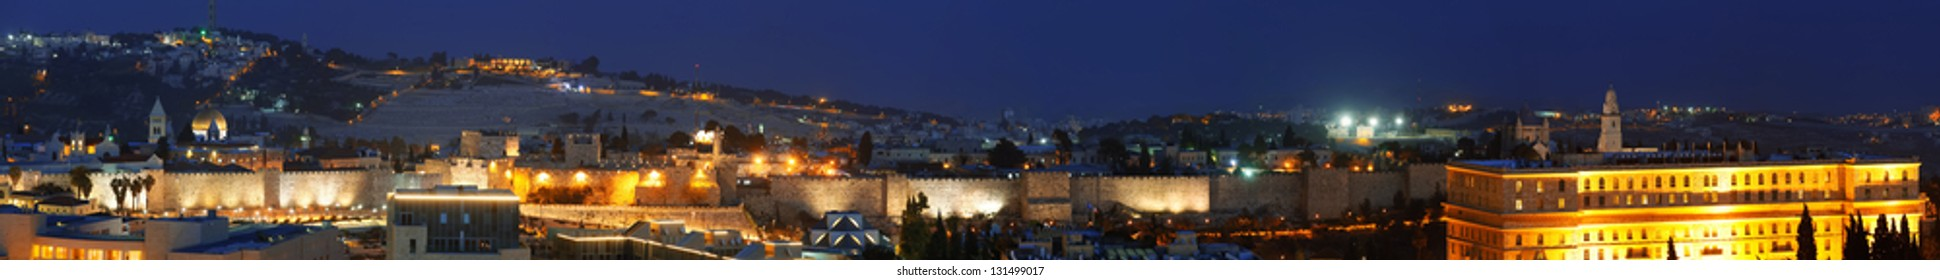 Panorama of Jerusalem Old City and Mount of Olives at Night, Israel